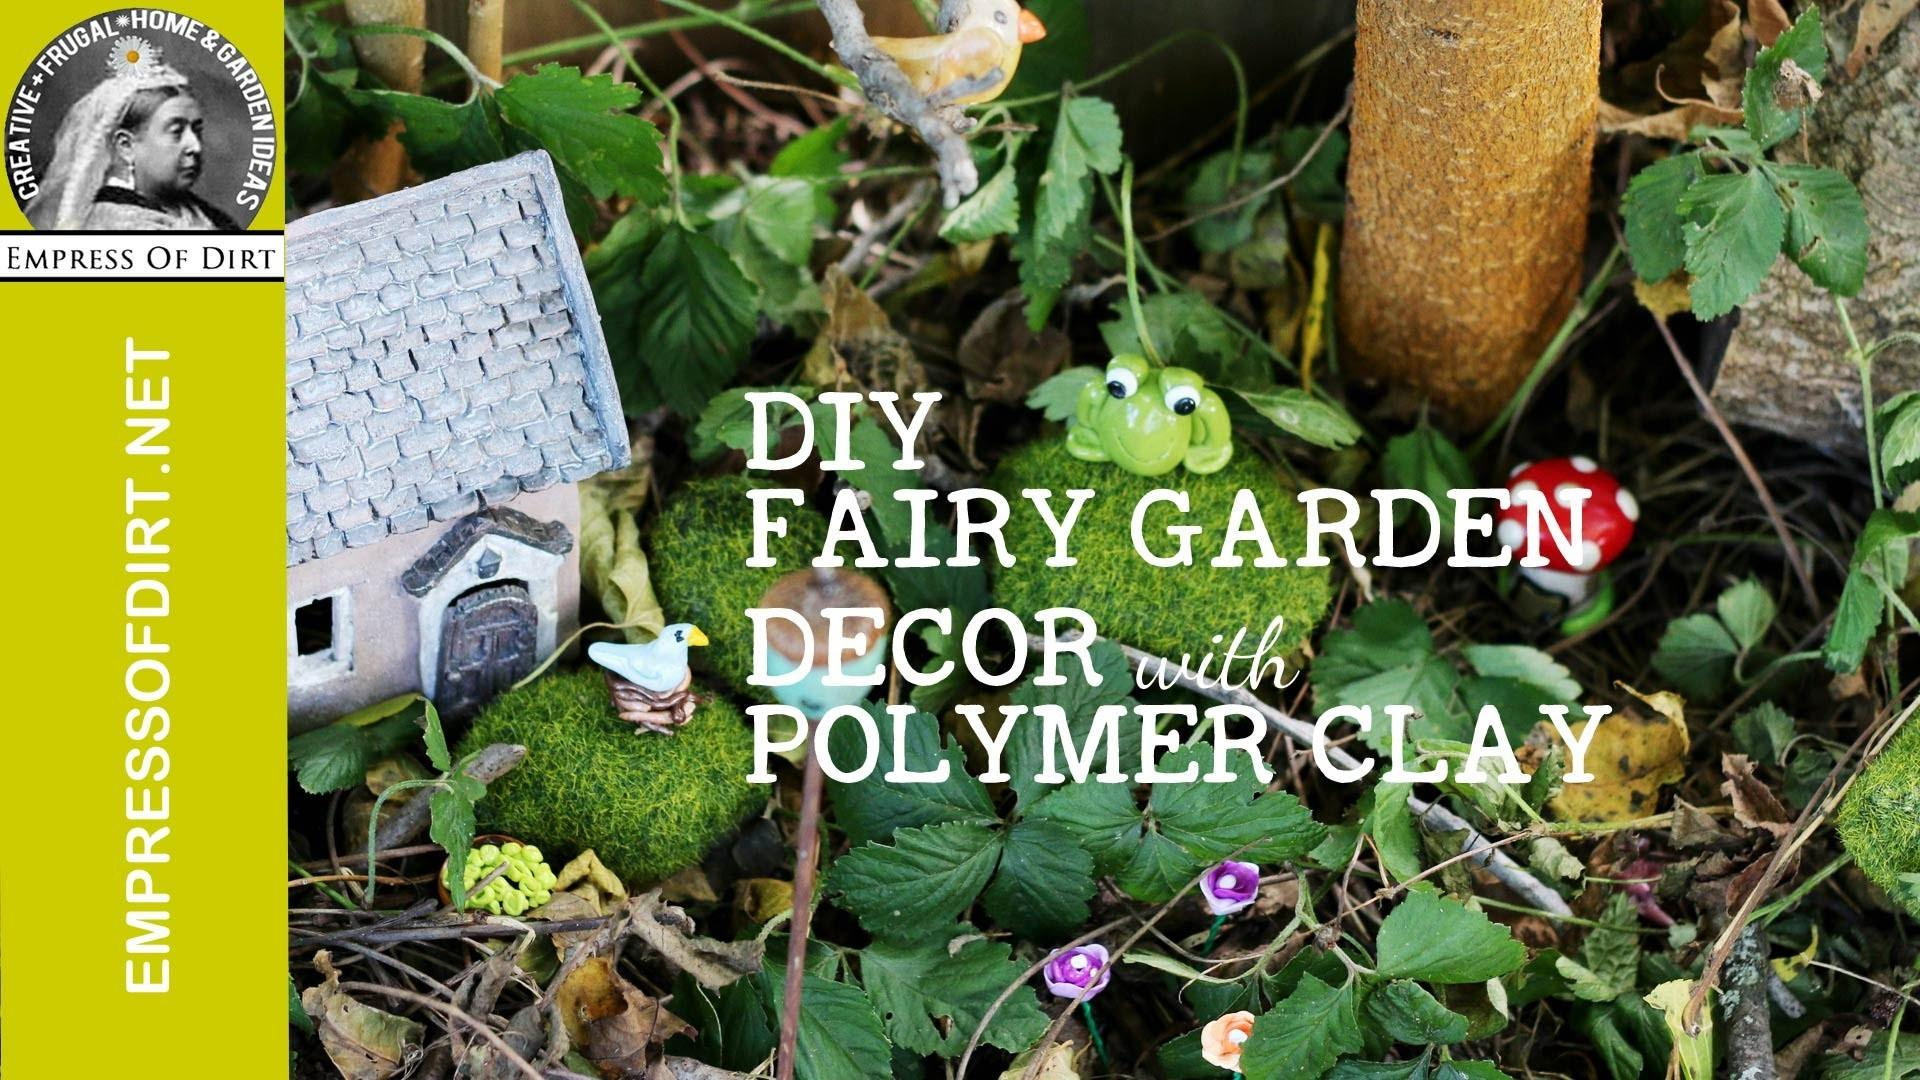 Diy Fairy Garden Decor Polymer Clay